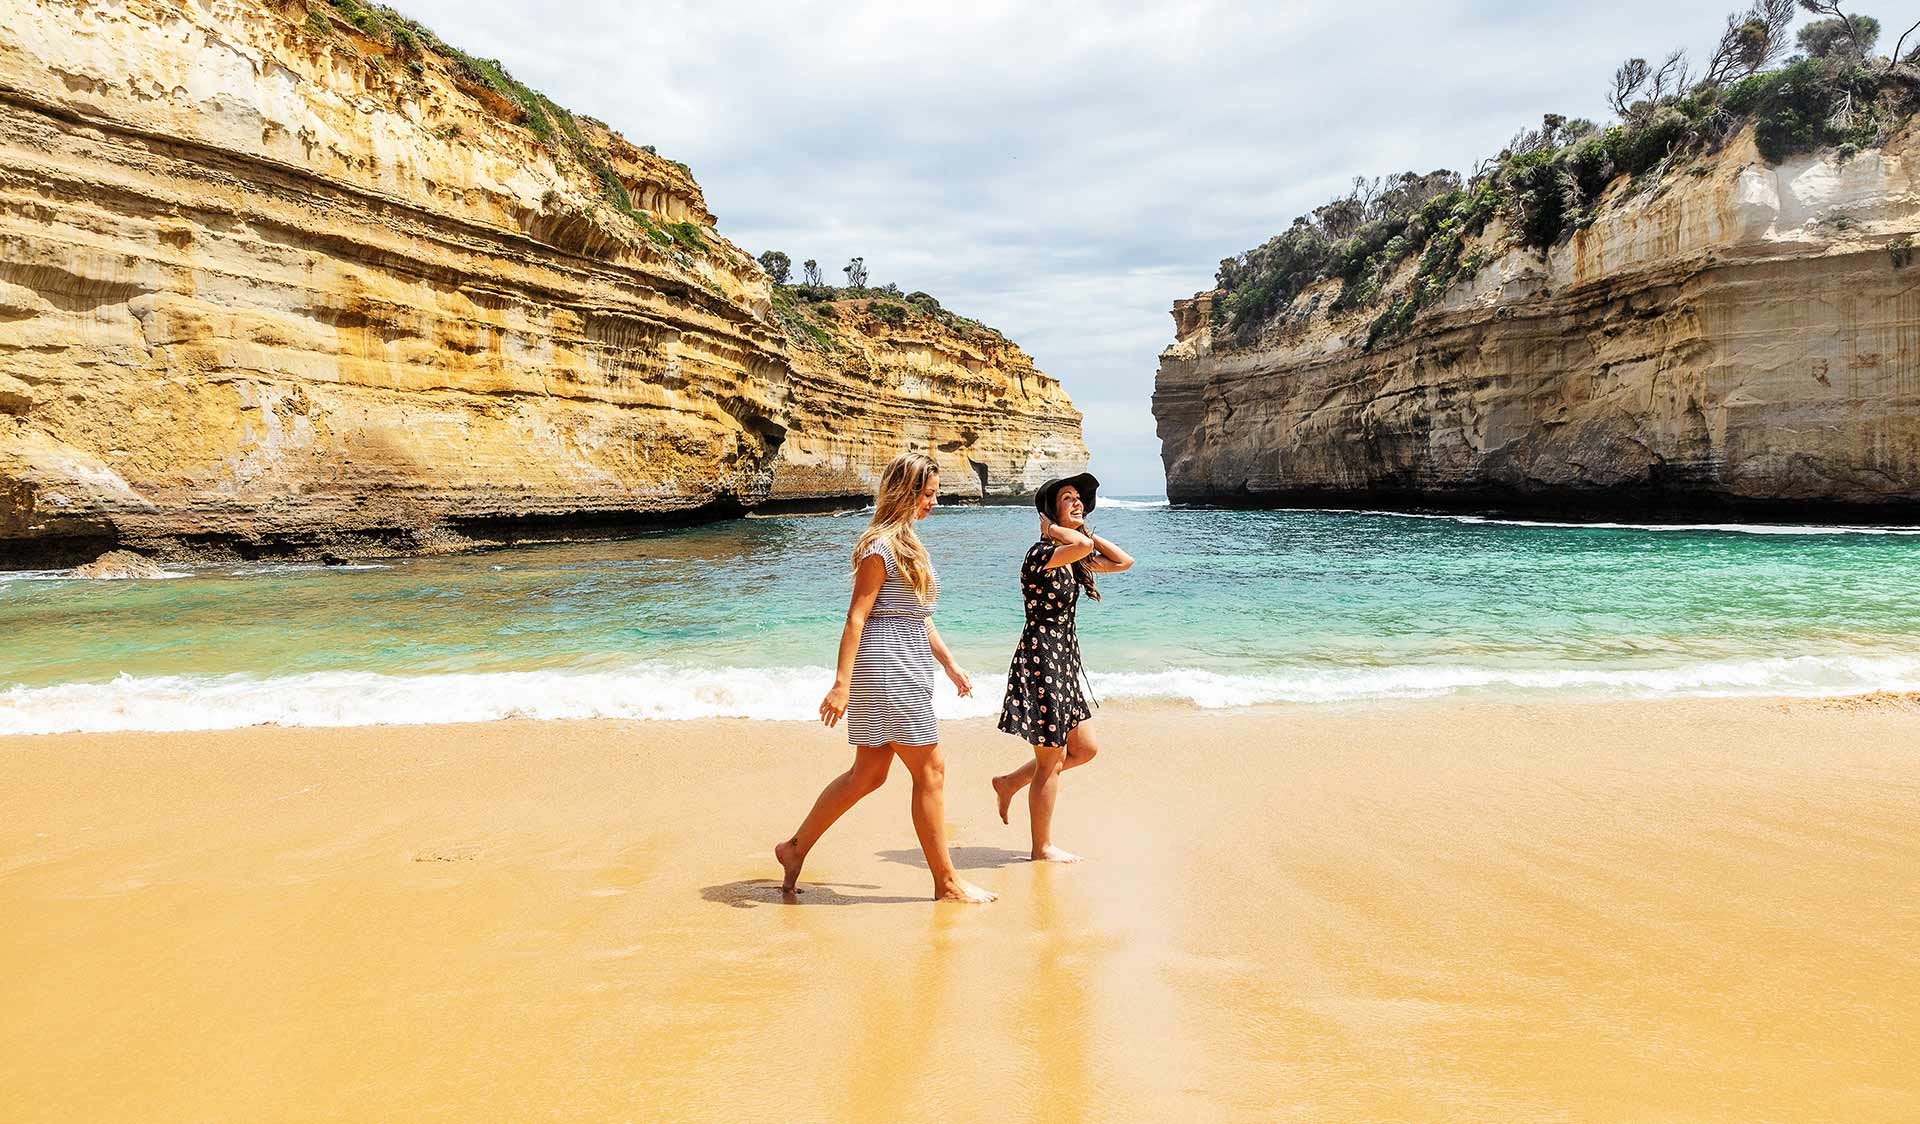 Two young wearing dresses stroll across the beach at Loch Ard Gorge.